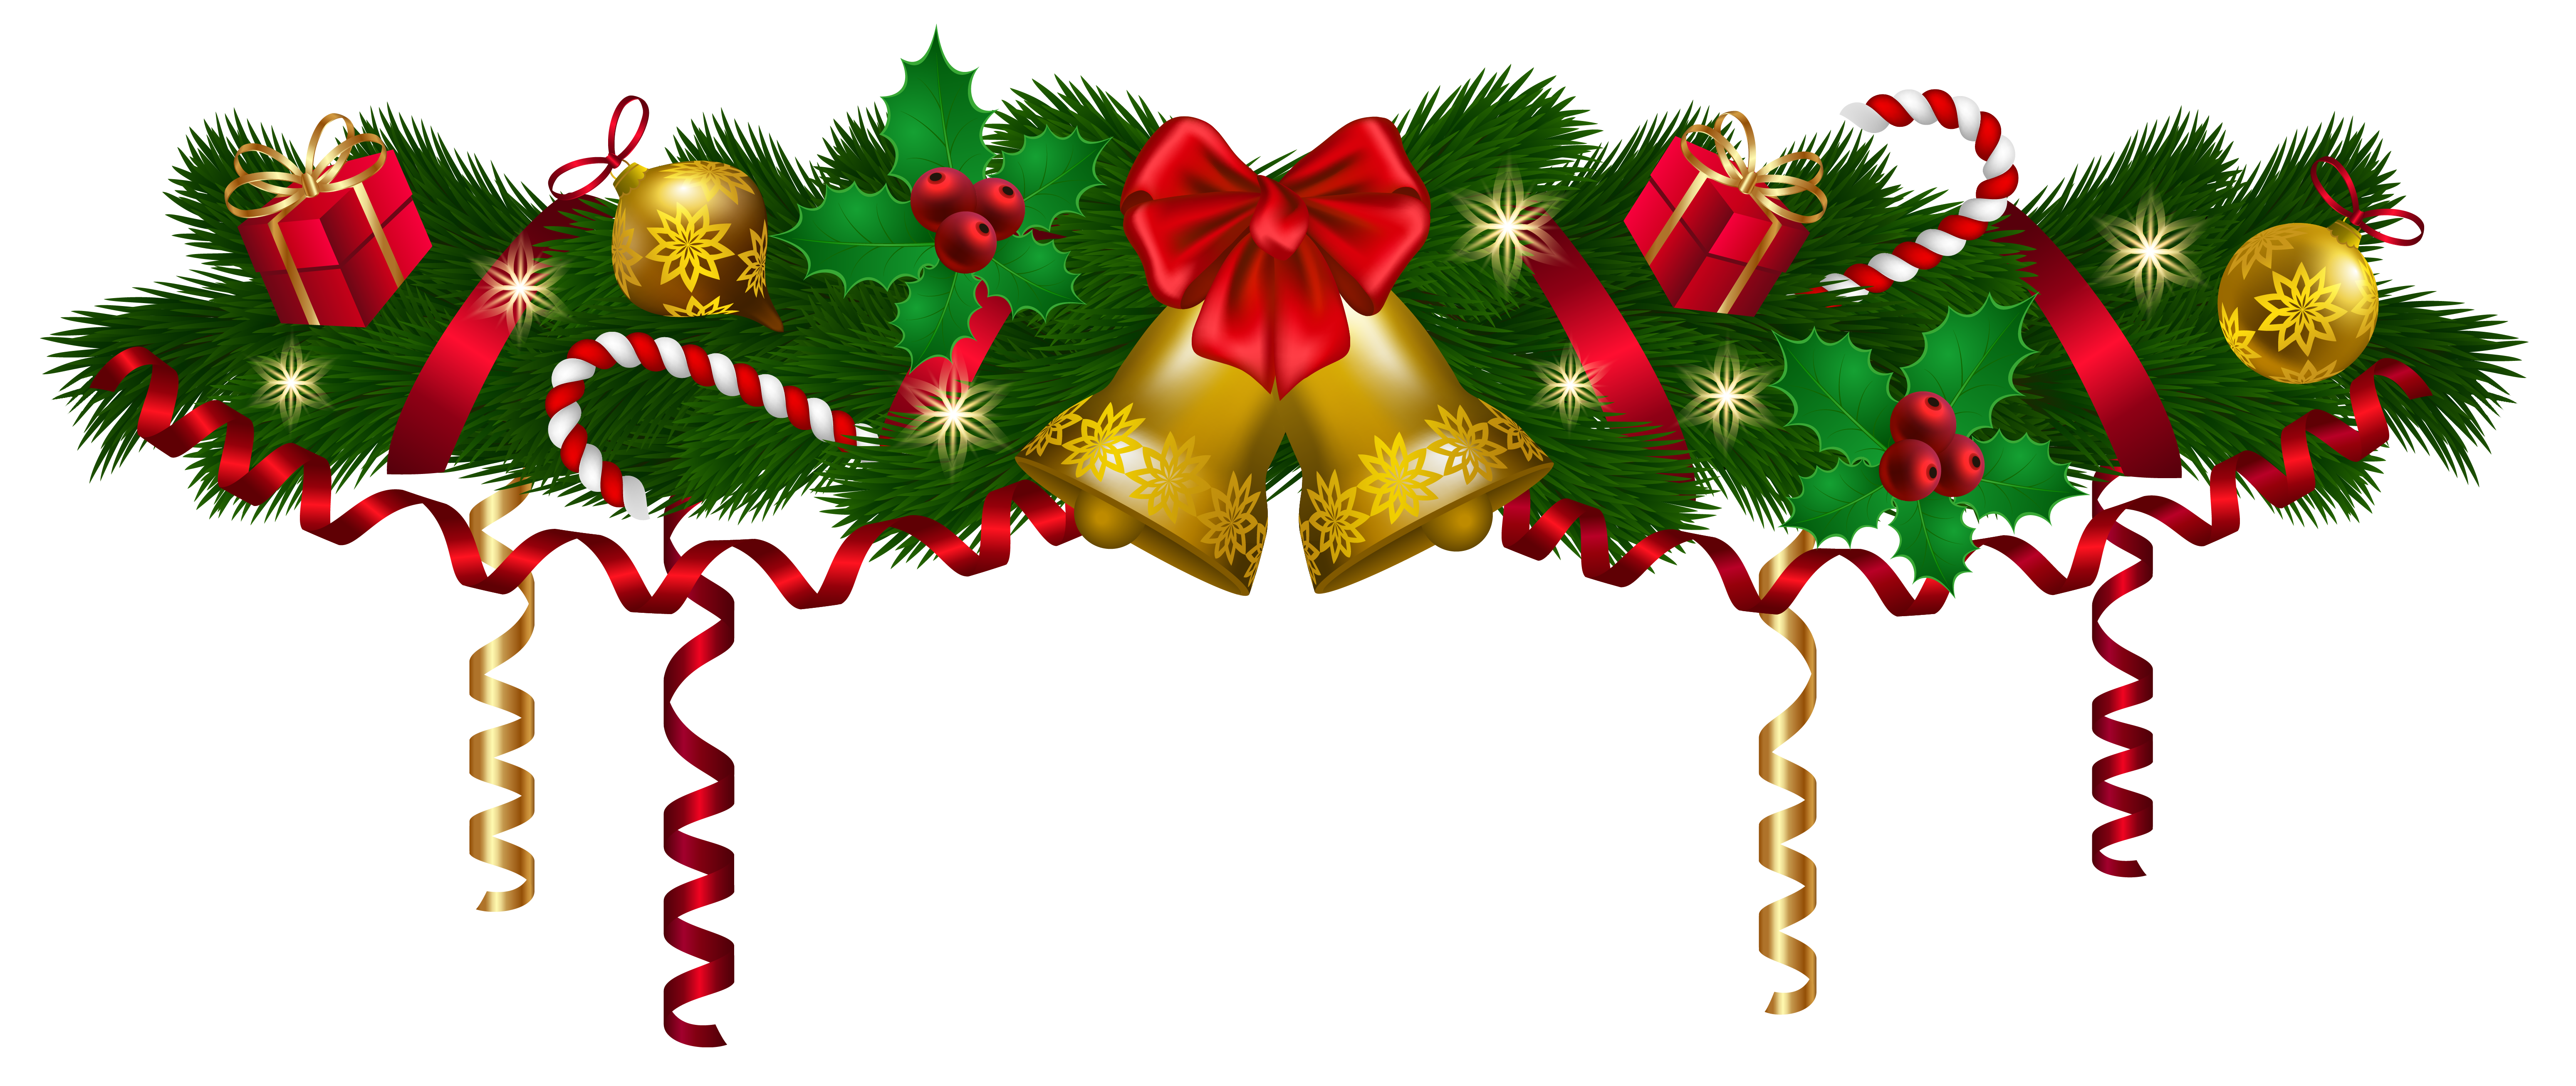 Tinsel border clipart clip library stock Holiday Garland Clipart | Free download best Holiday Garland Clipart ... clip library stock